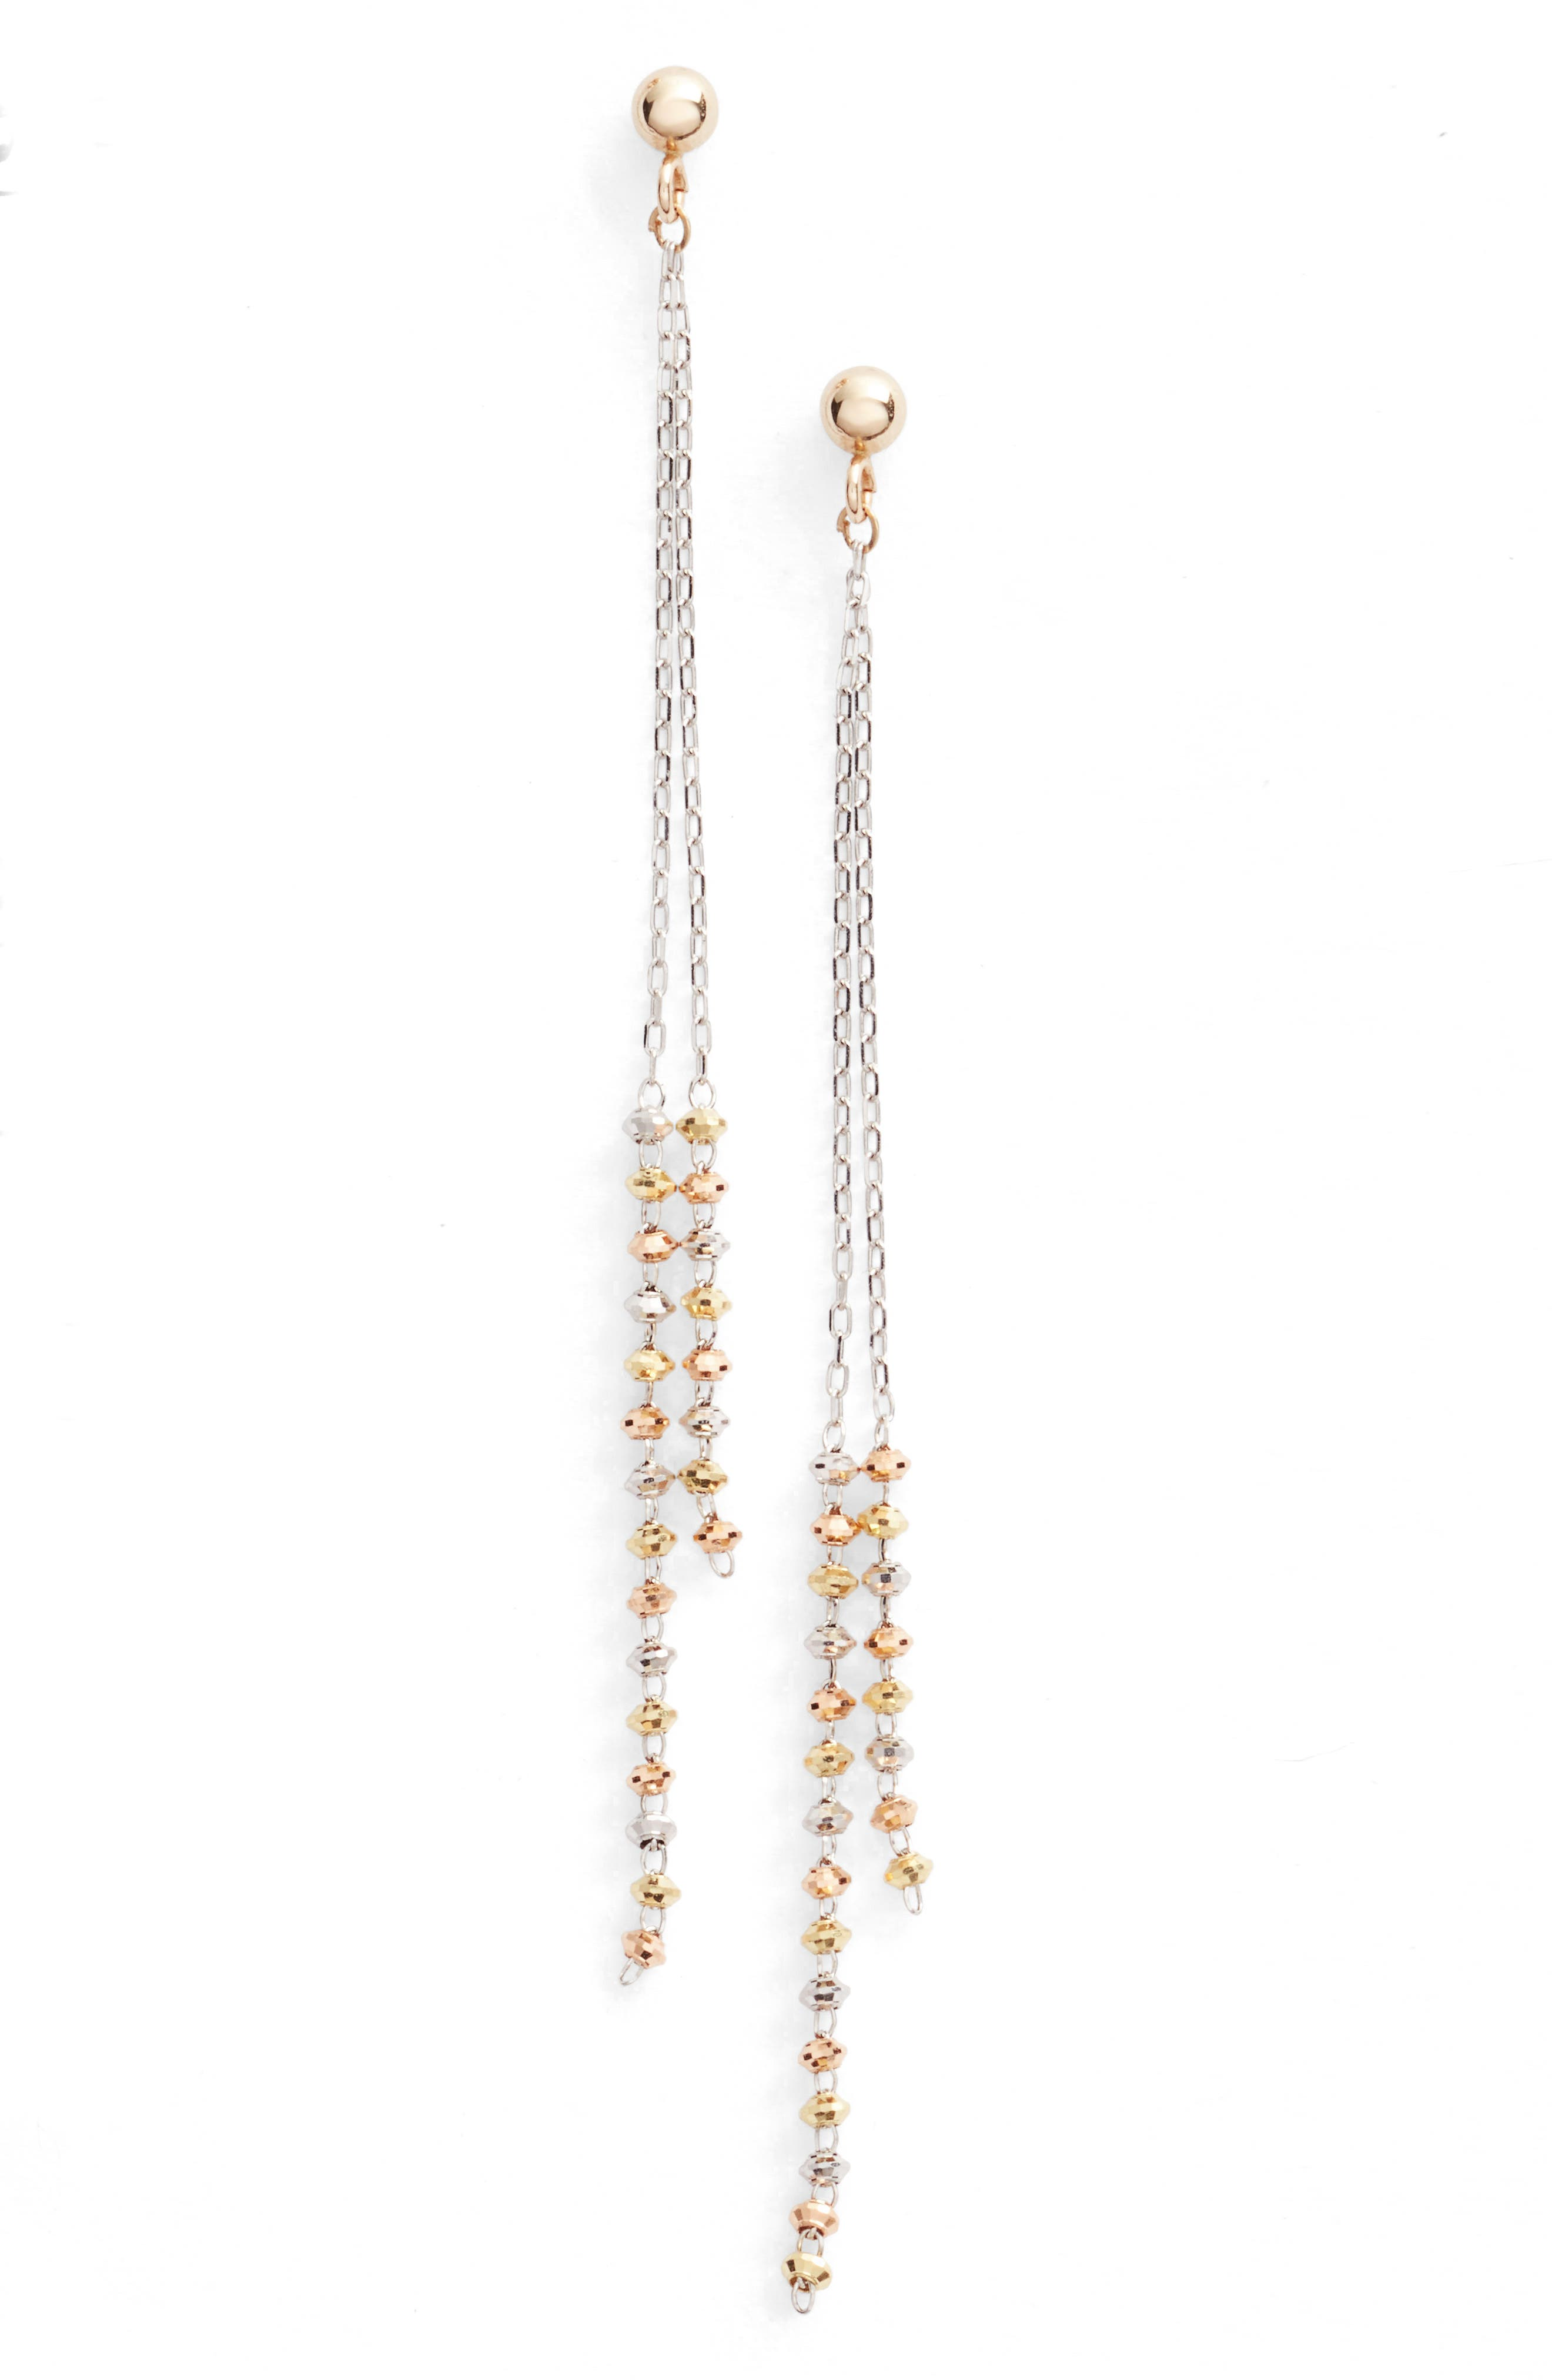 Poppy Finch Double Shimmer Linear Drop Earrings